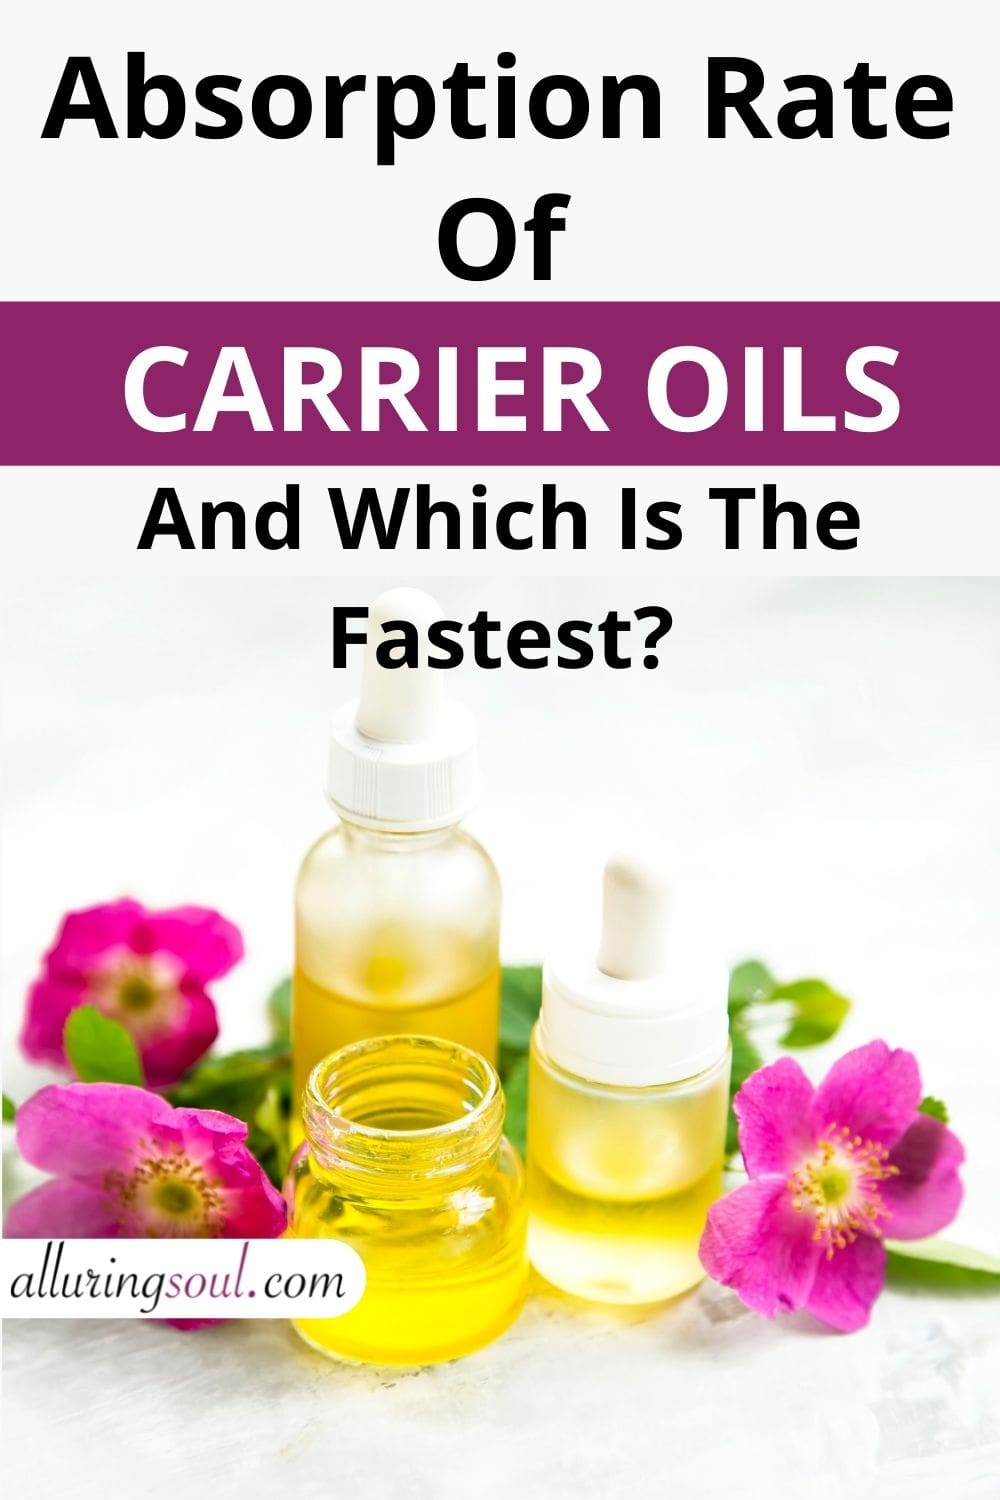 Absorption Rates Of Carrier Oils (And Which Is The Fastest?)